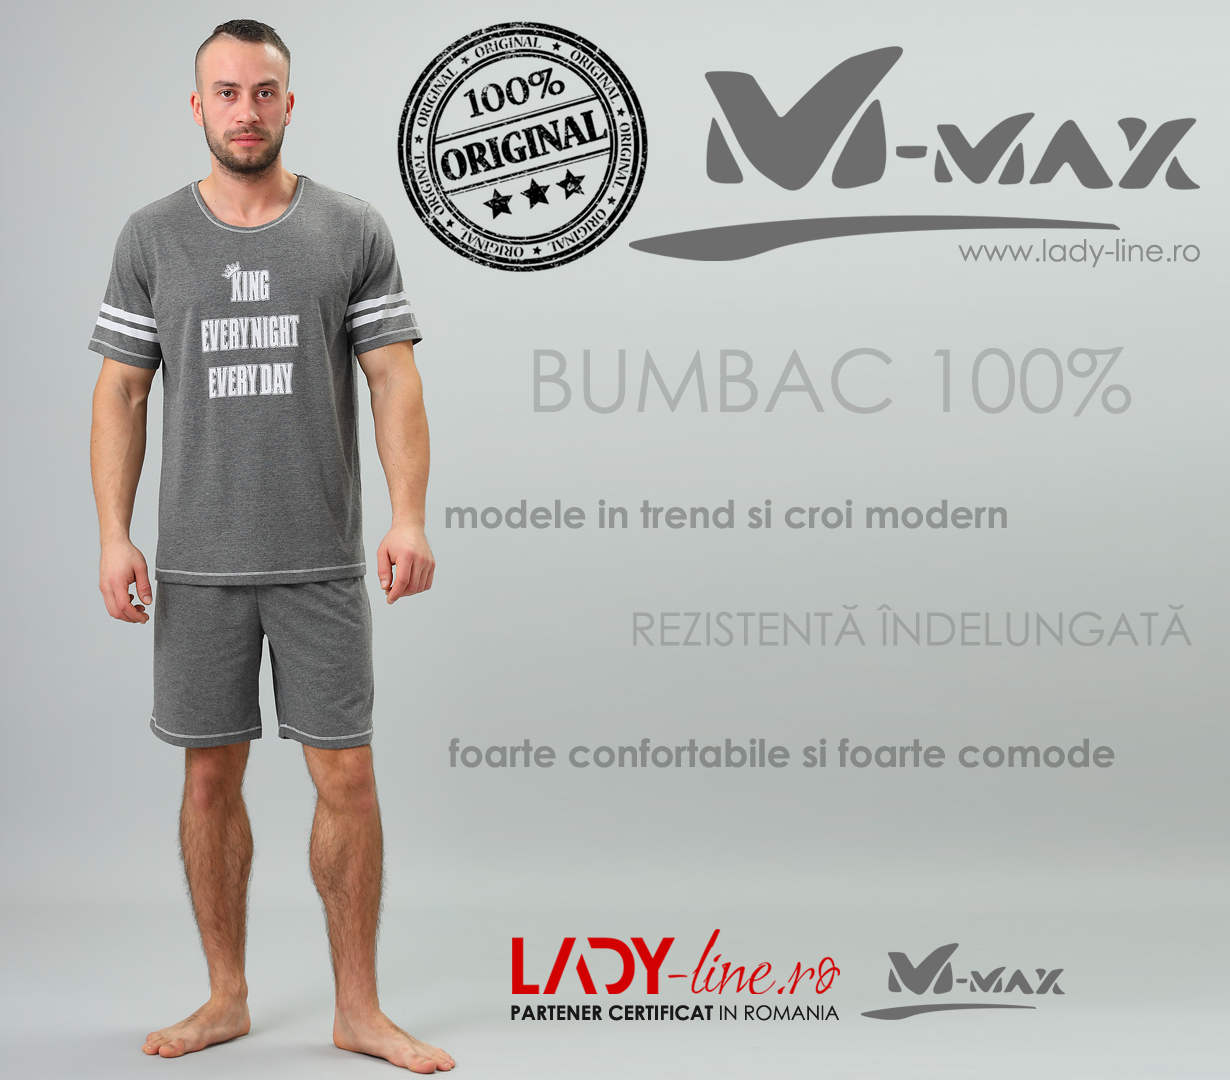 Pijamale Barbati M-Max, Bumbac 100%, 'King EvryNight EveryDay'